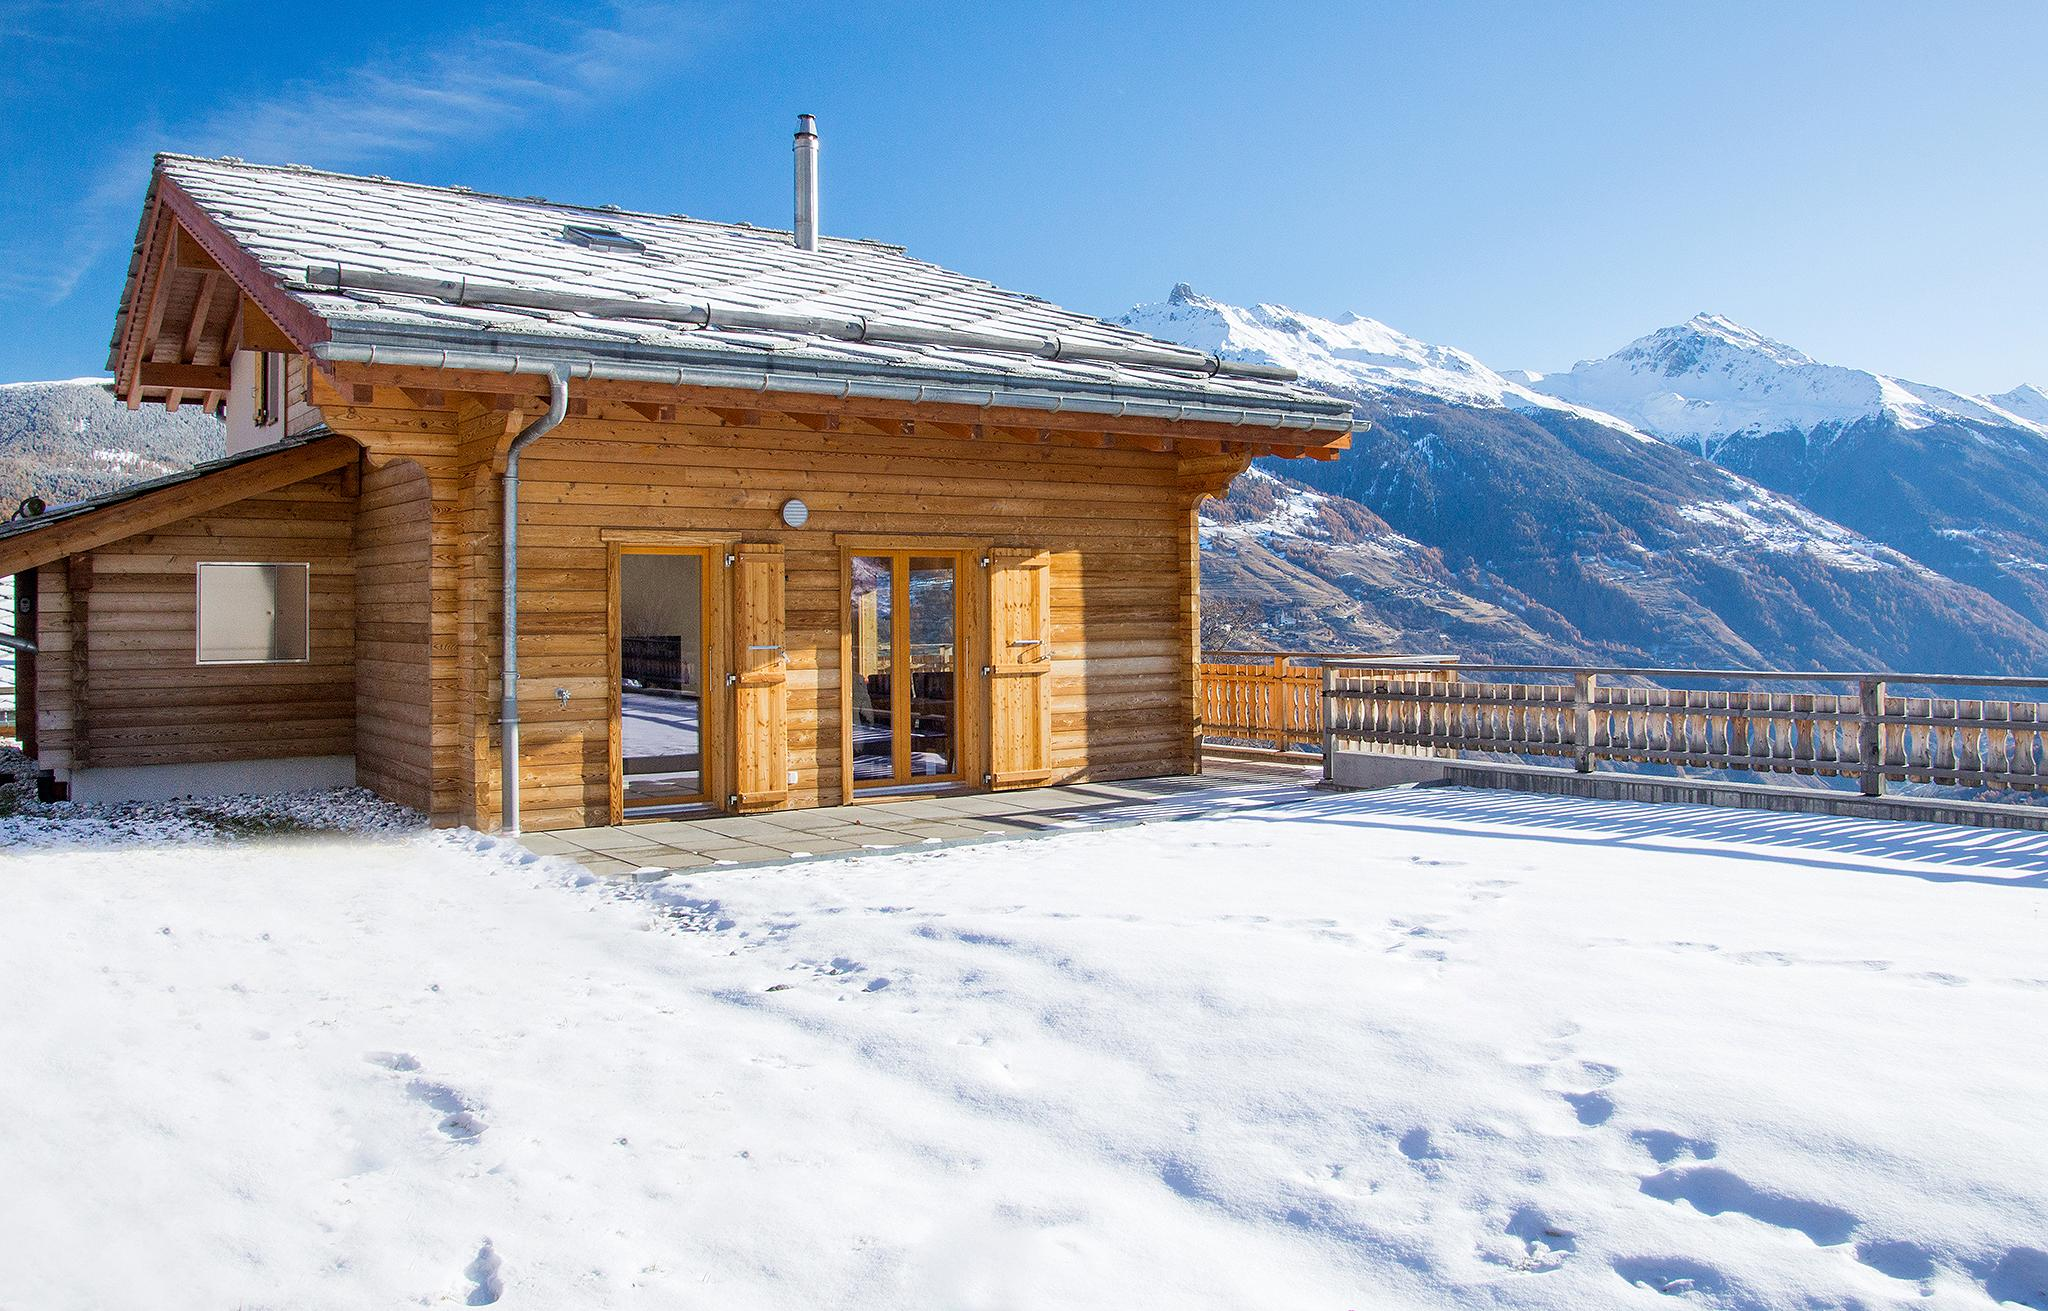 Chalet Ourson Blanc